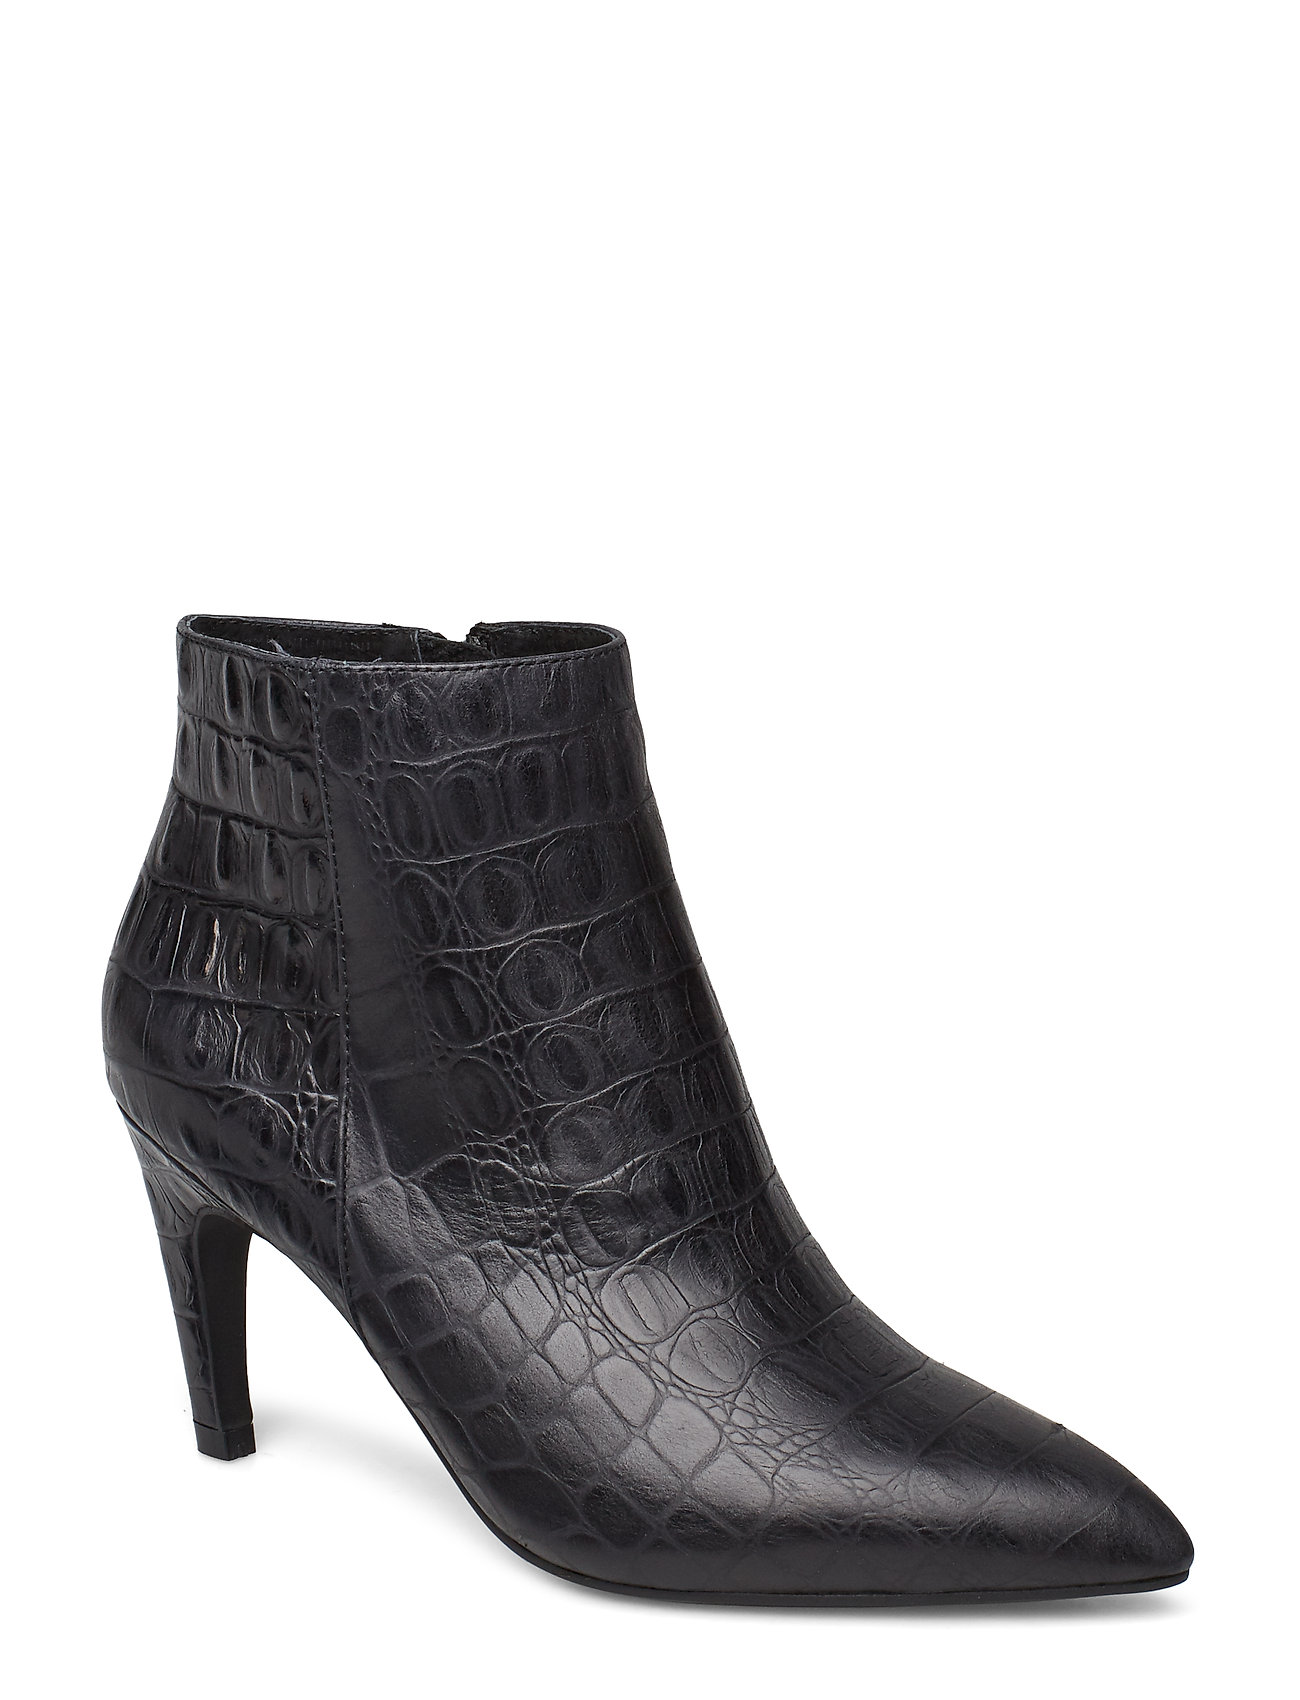 Image of Vanessa Croco L Shoes Boots Ankle Boots Ankle Boot - Heel Sort Shoe The Bear (3406197689)